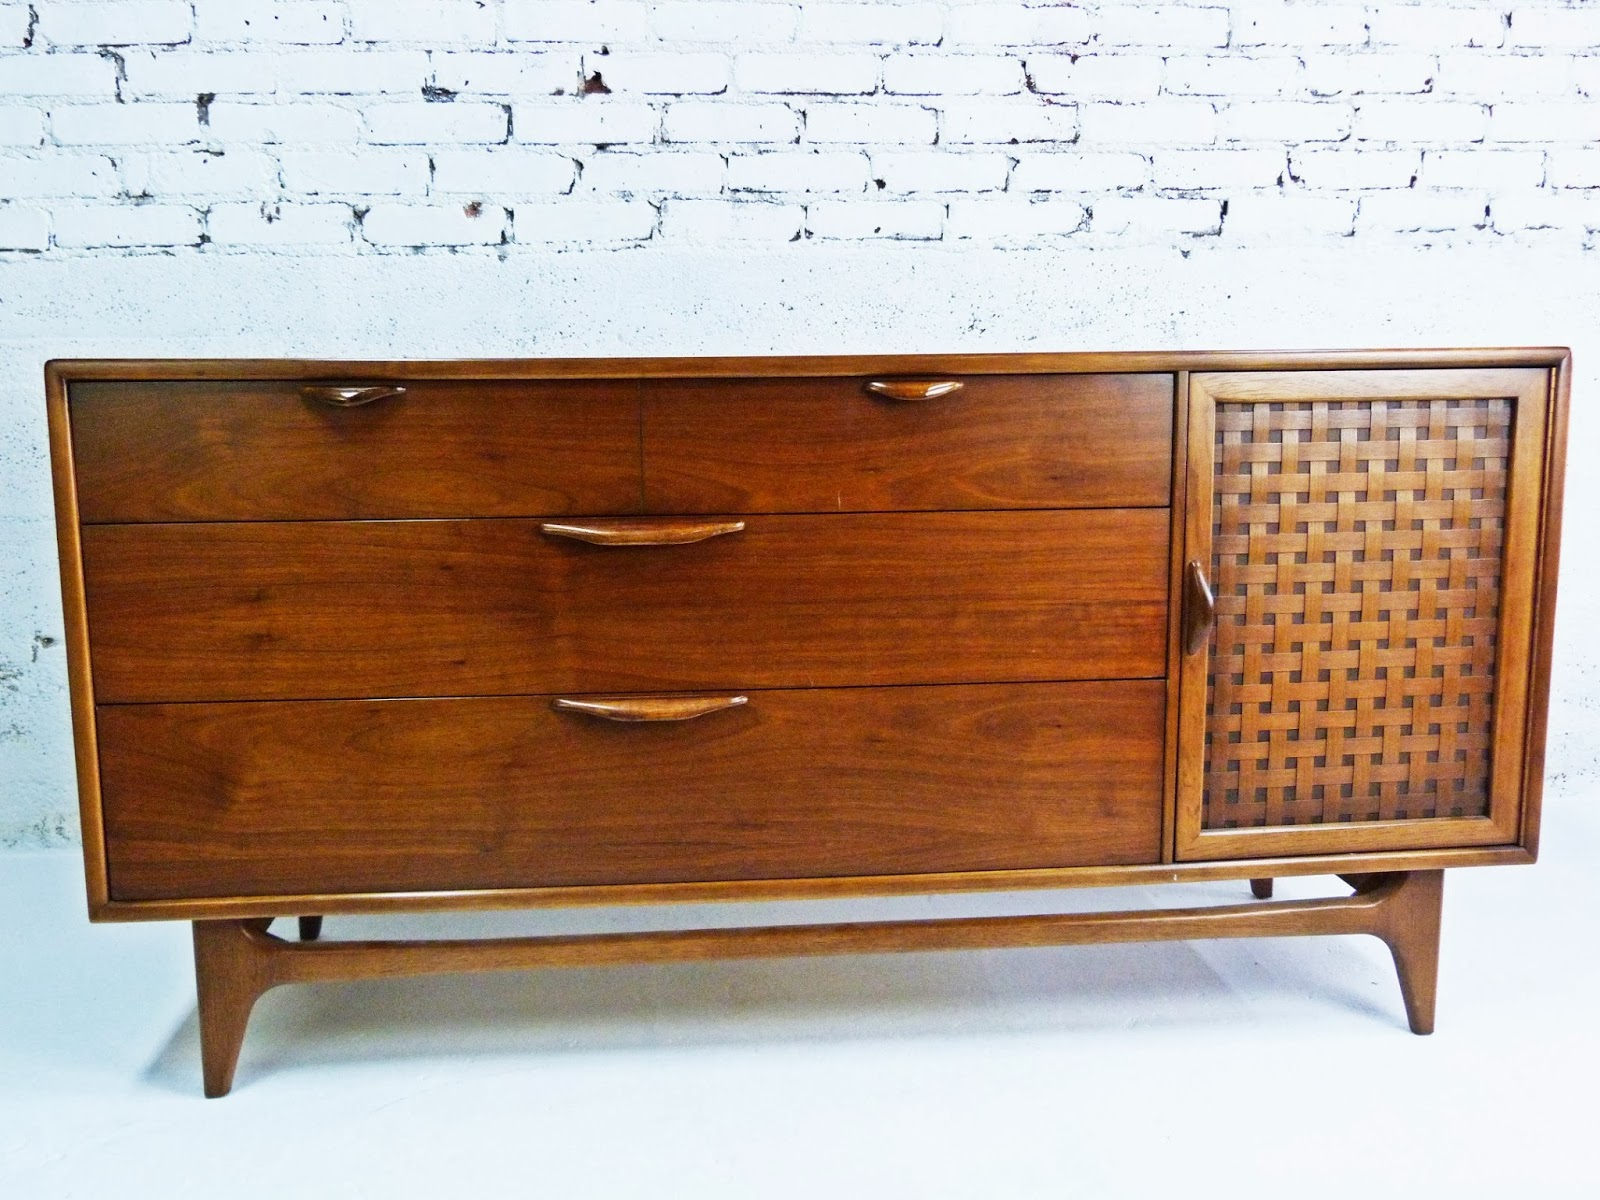 Modern Mid Century Danish Vintage Furniture Shop Used